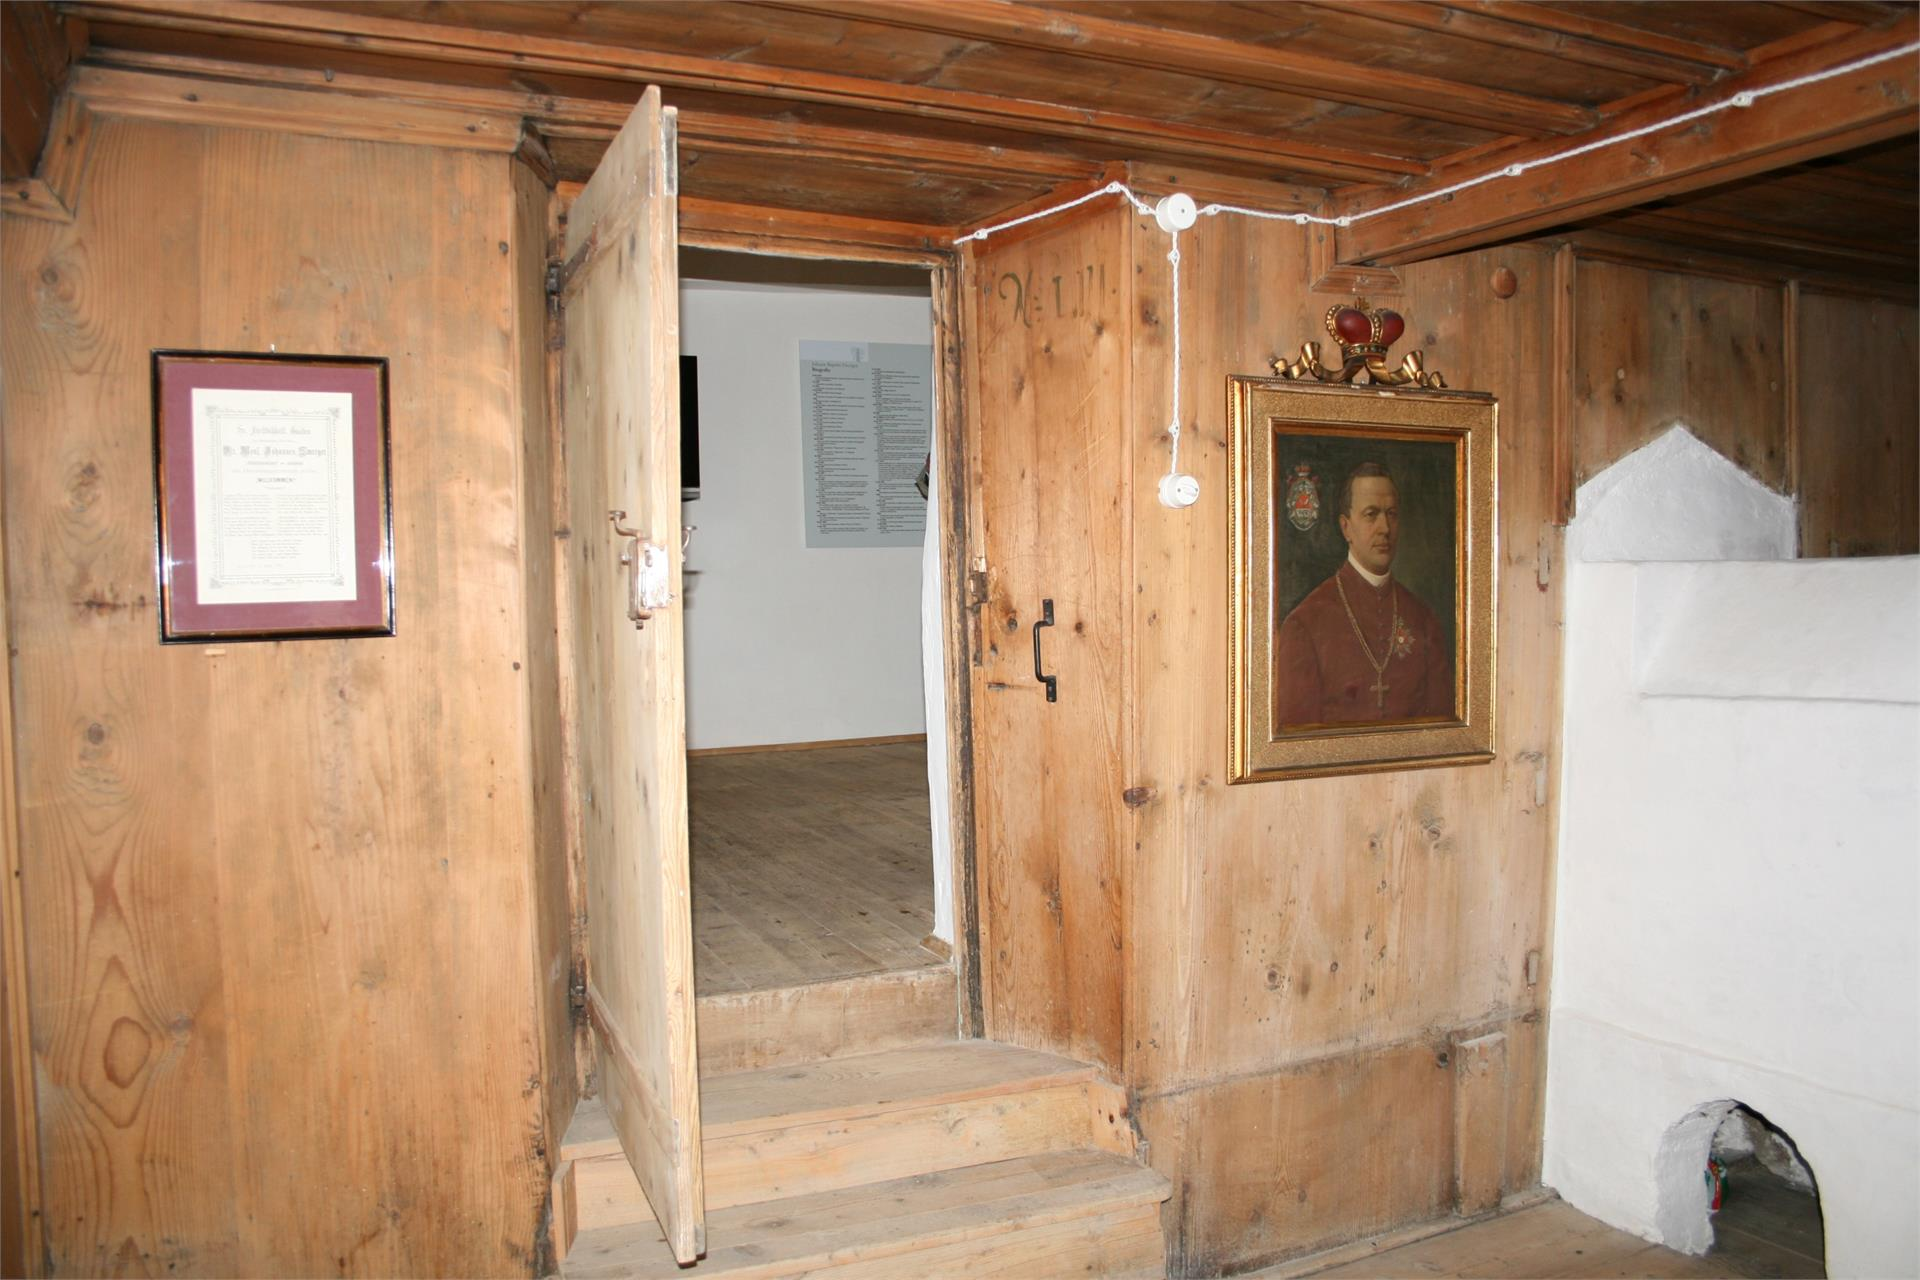 Museum in the Residence of Bishop Johannes Zwerger